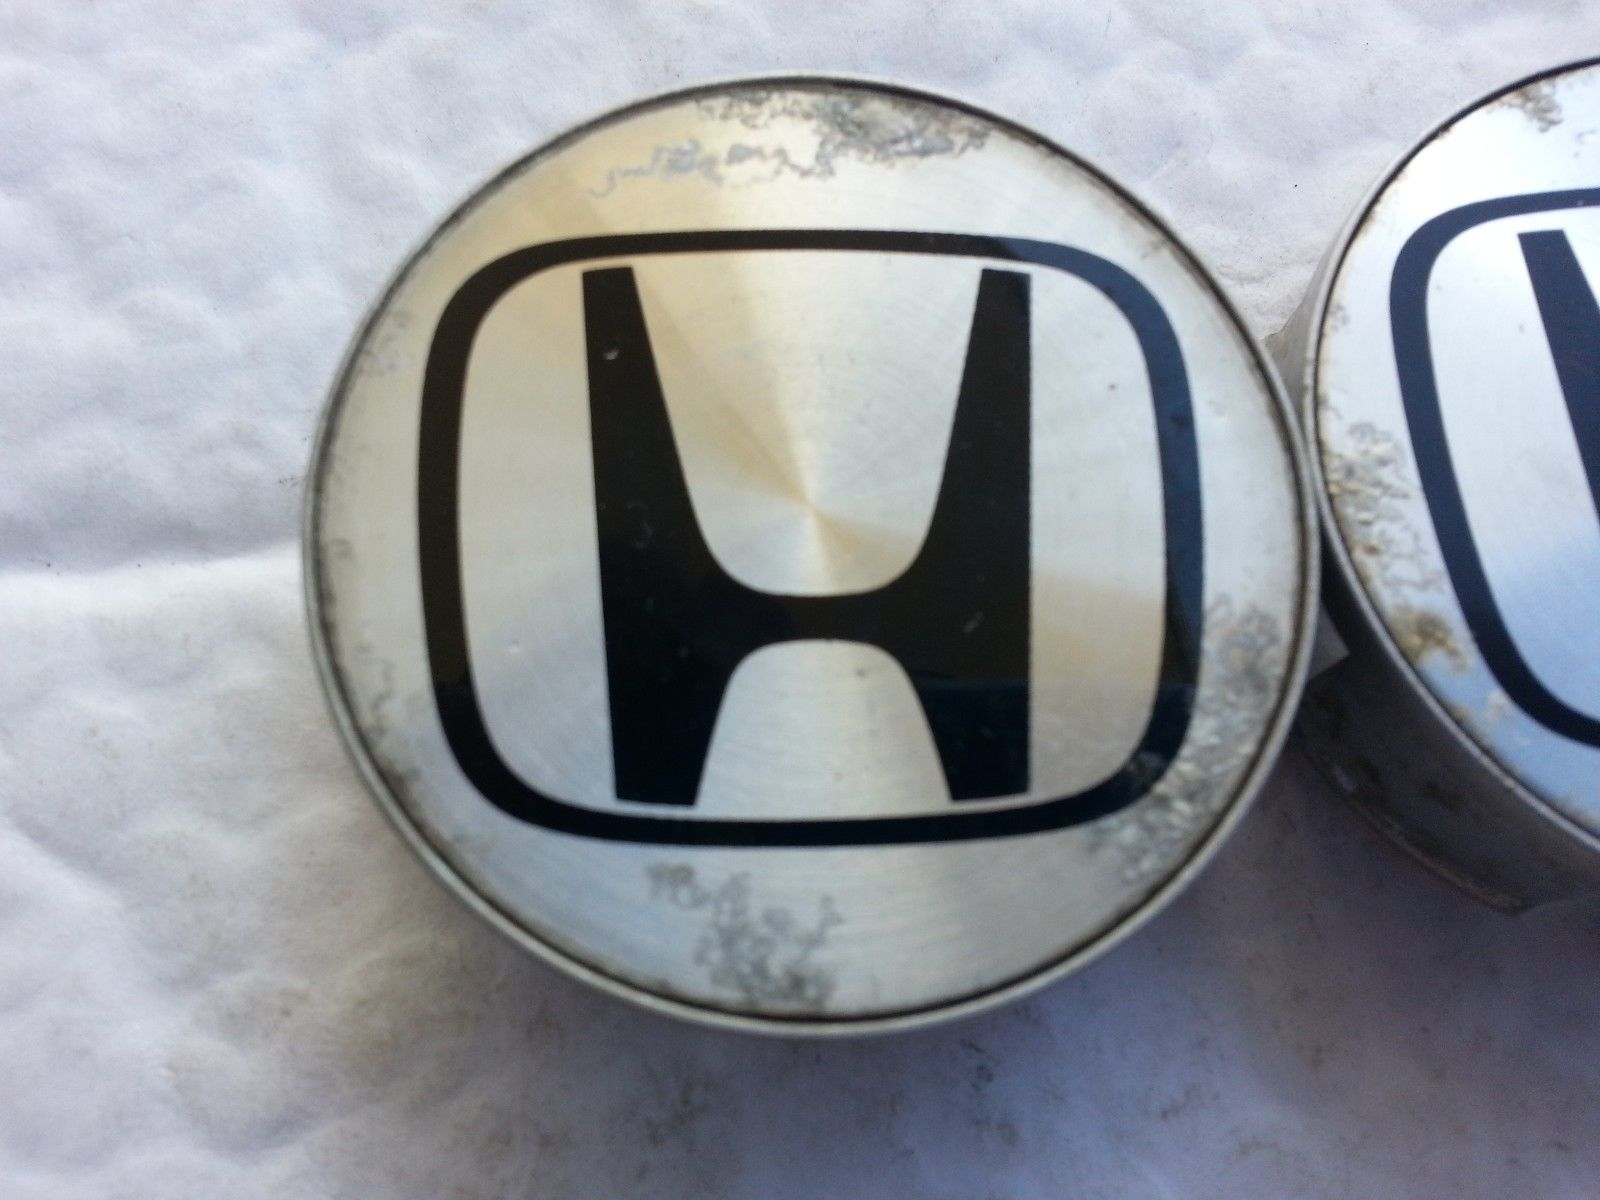 1999-2006 Honda Civic hubcap Center Cap 44732-S50-N910 Lot of 2 44732-S50-N910 st389